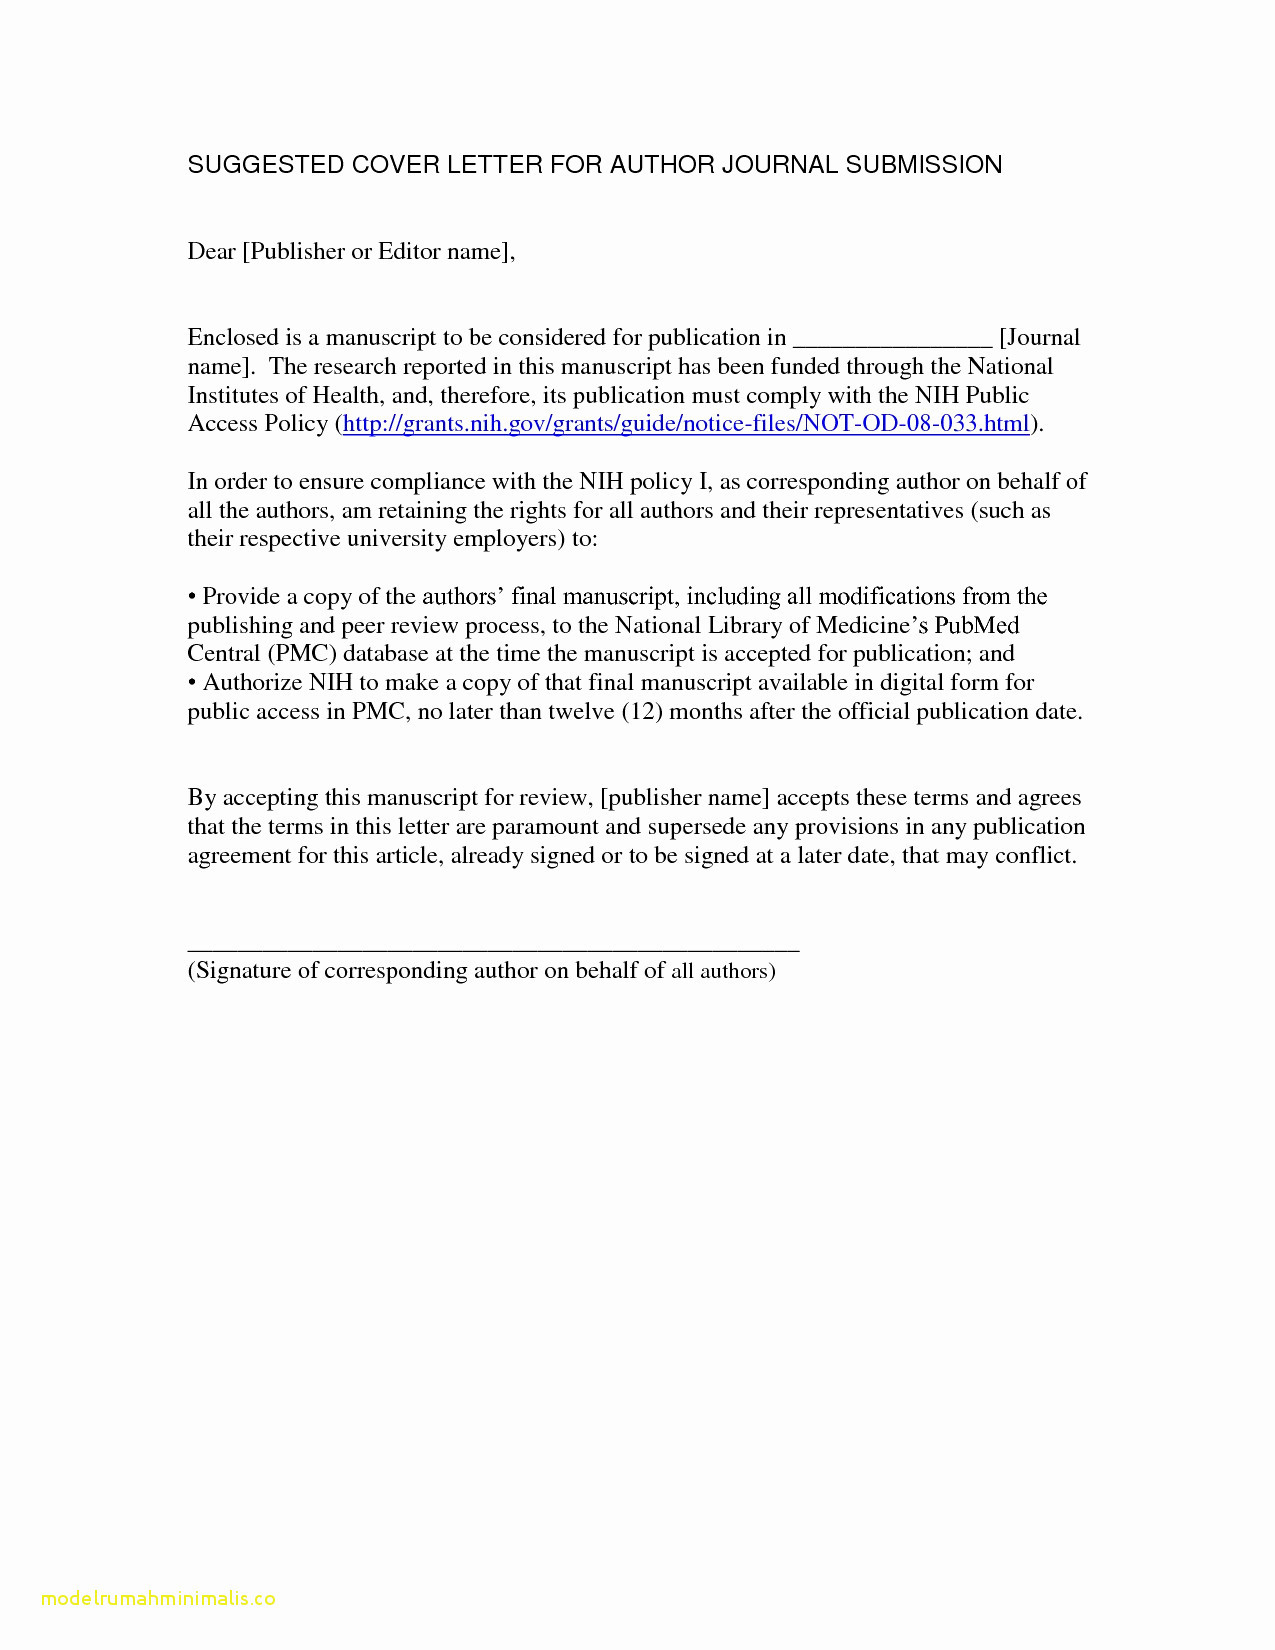 Personal Loan Agreement Letter Personal Loan Template Letter Collection Letter Templates